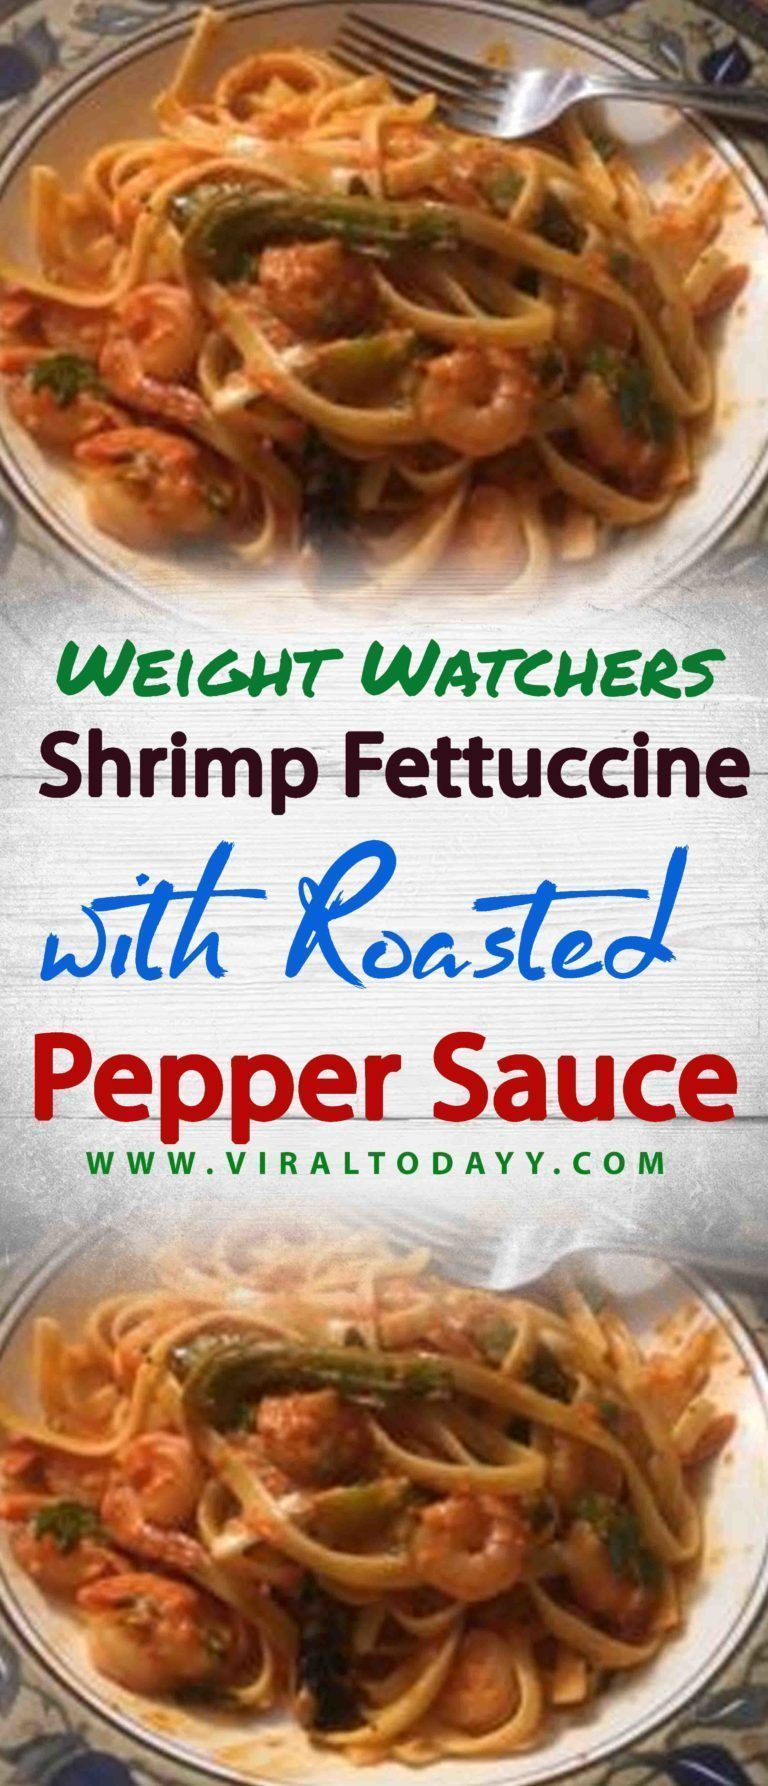 Shrimp Fettuccine with Roasted Pepper Sauce – Page 2 – All about Your Power Recipes #shrimpfettuccine Shrimp Fettuccine with Roasted Pepper Sauce – Page 2 – All about Your Power Recipes #shrimpfettuccine Shrimp Fettuccine with Roasted Pepper Sauce – Page 2 – All about Your Power Recipes #shrimpfettuccine Shrimp Fettuccine with Roasted Pepper Sauce – Page 2 – All about Your Power Recipes #shrimpfettuccine Shrimp Fettuccine with Roasted Pepper Sauce – Page 2 – All about Your Po #shrimpfettuccine